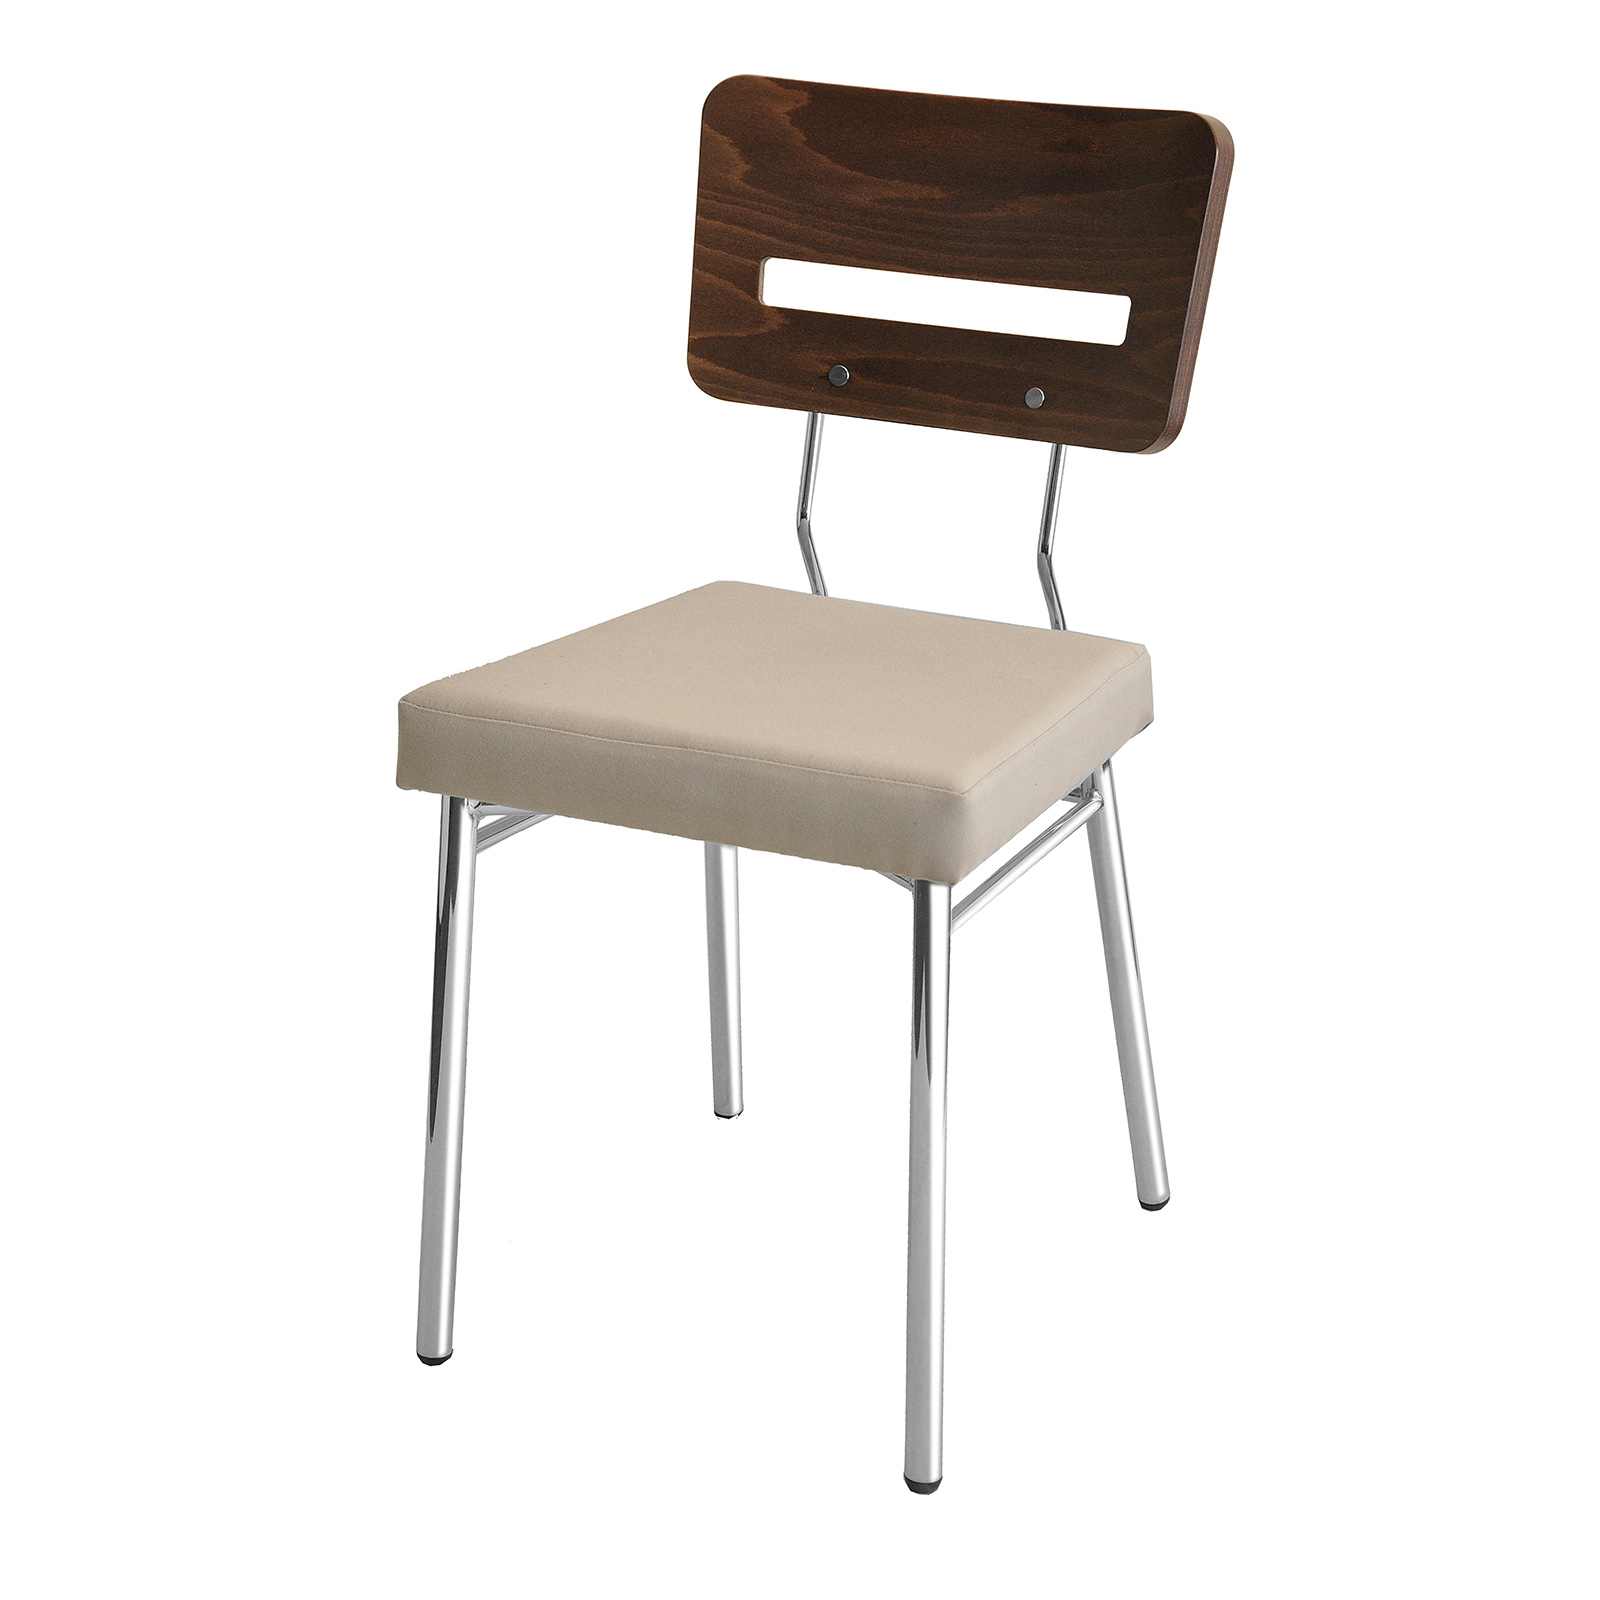 Florida Seating CN-MADISON S GR1 chair, side, indoor